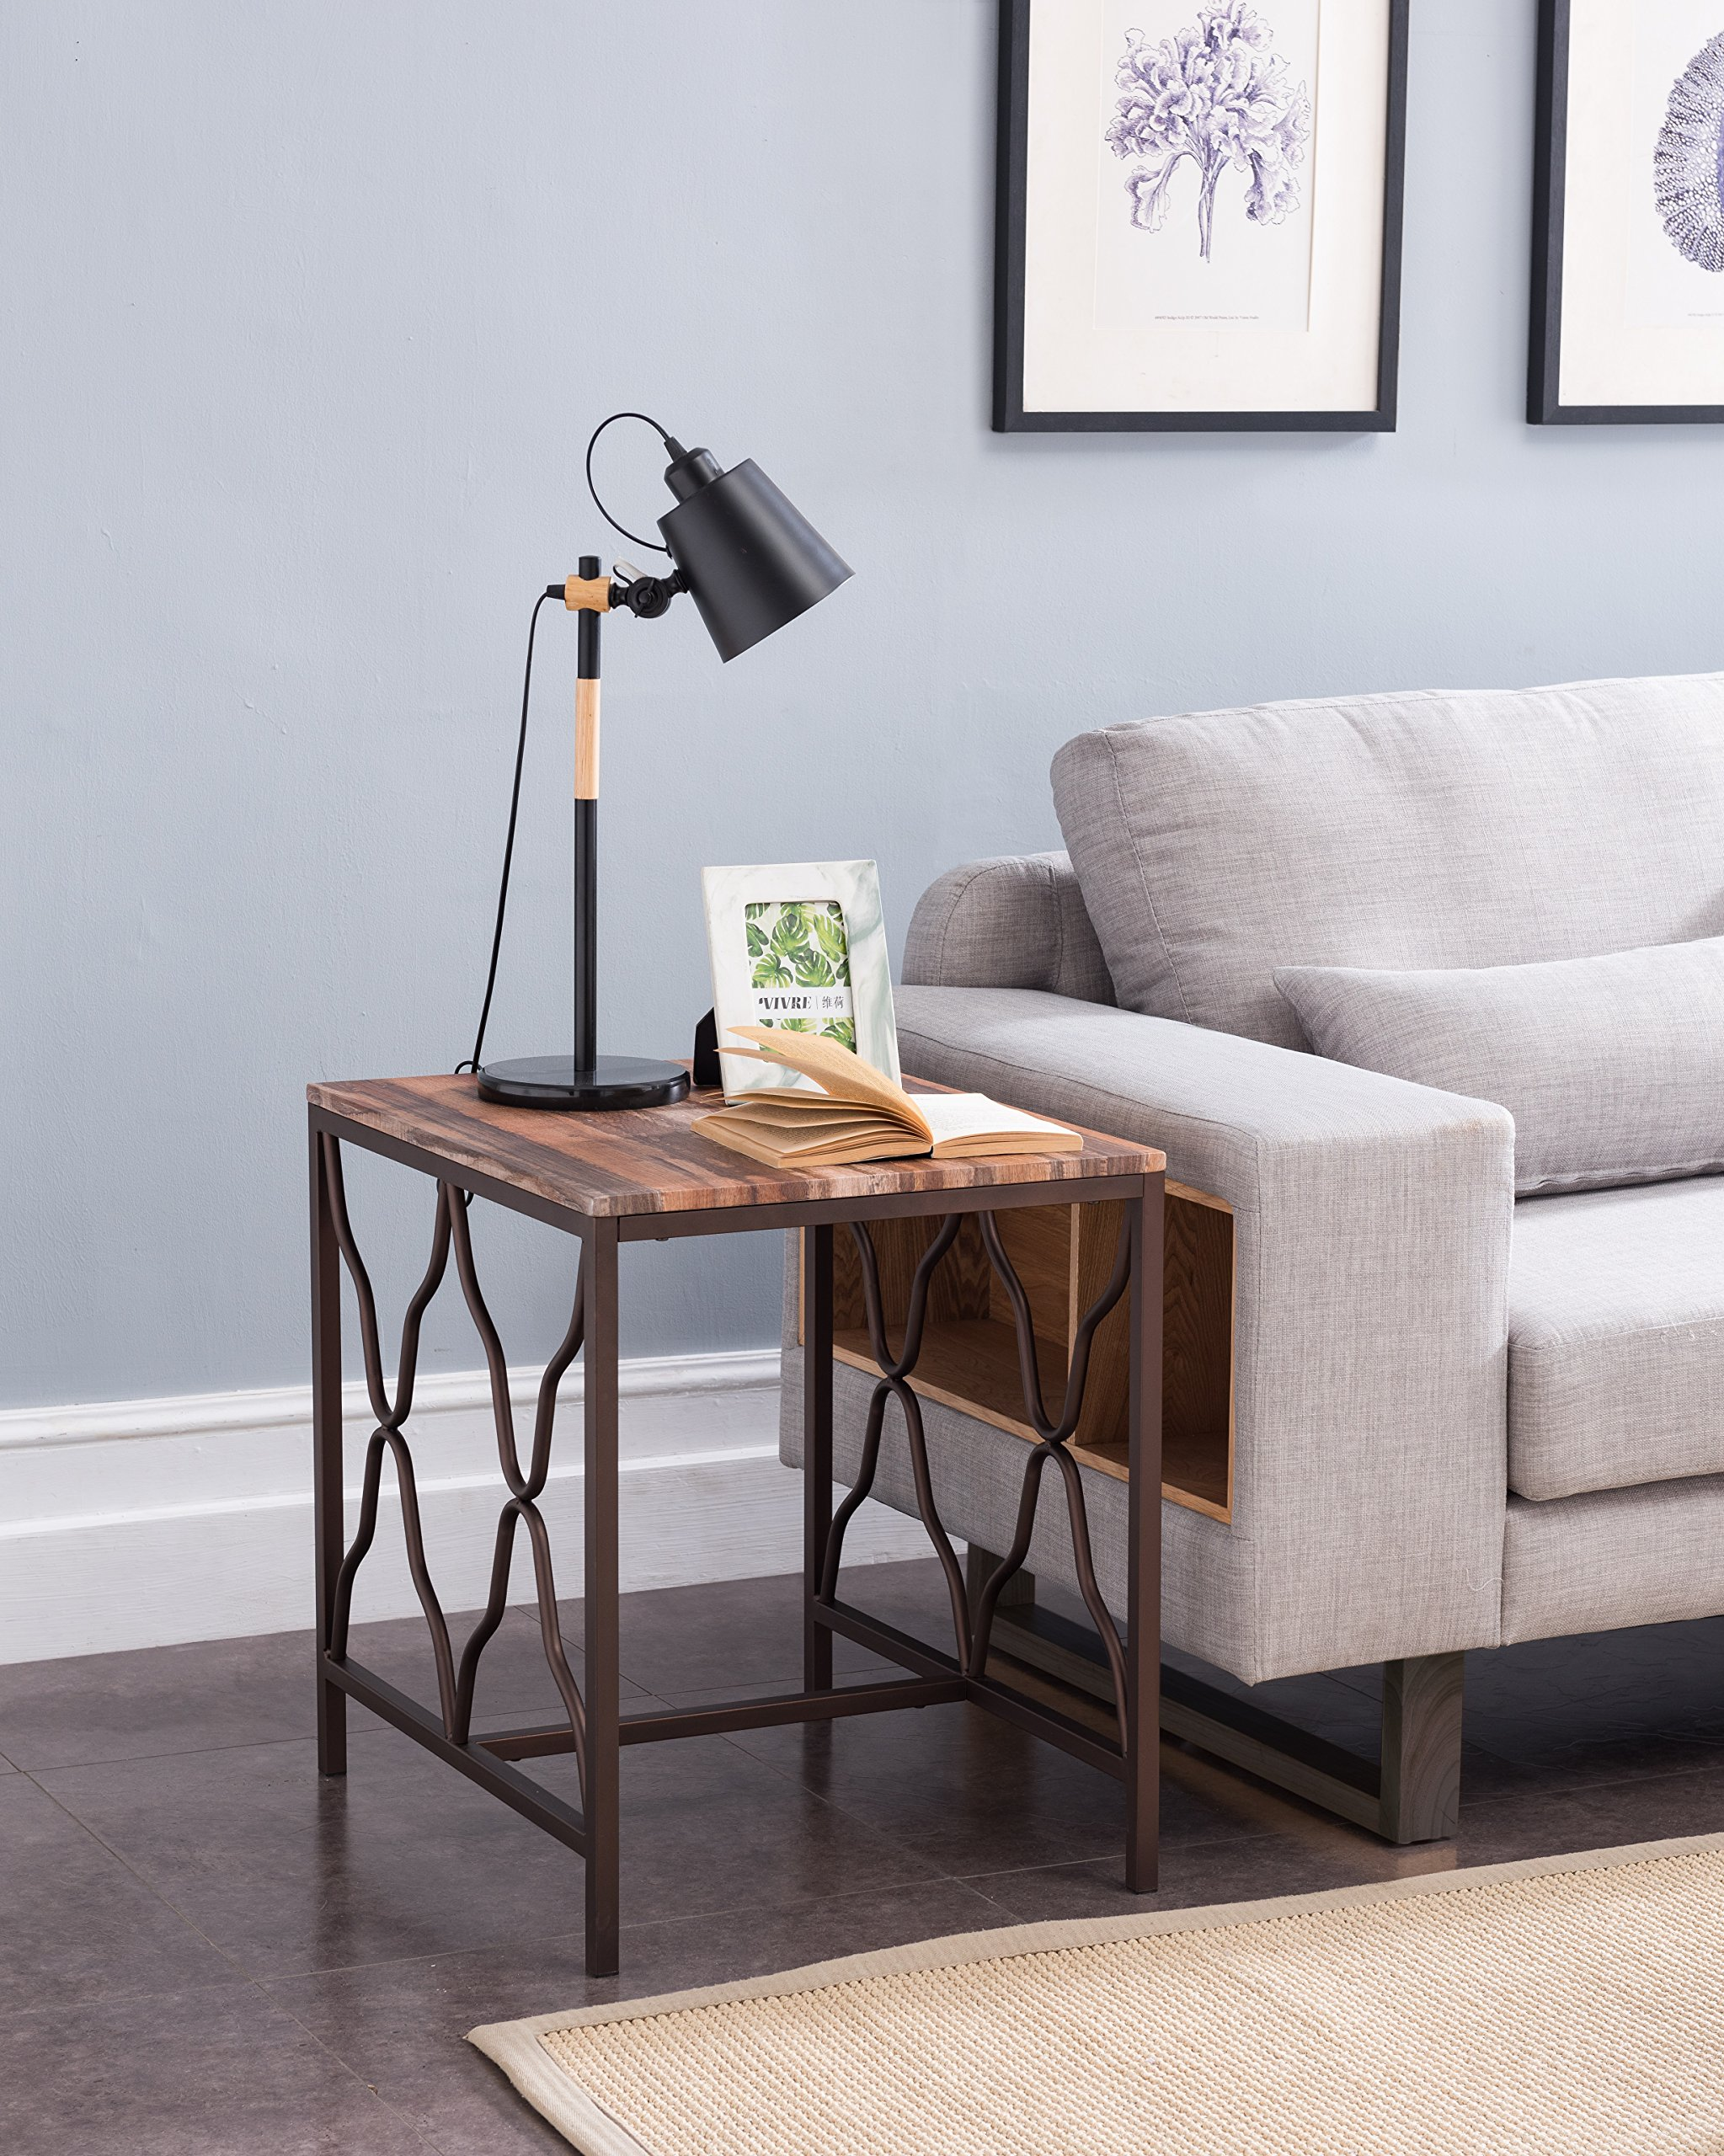 """Weathered Oak Top Metal Frame Scroll Chair Side End Table 24"""" H - Color: Weathered Oak and Dark Brown Material: Metal, MDF/Hardwood Features large surface top and scroll designs on the sides - living-room-furniture, living-room, end-tables - 91n5lCmp9qL -"""